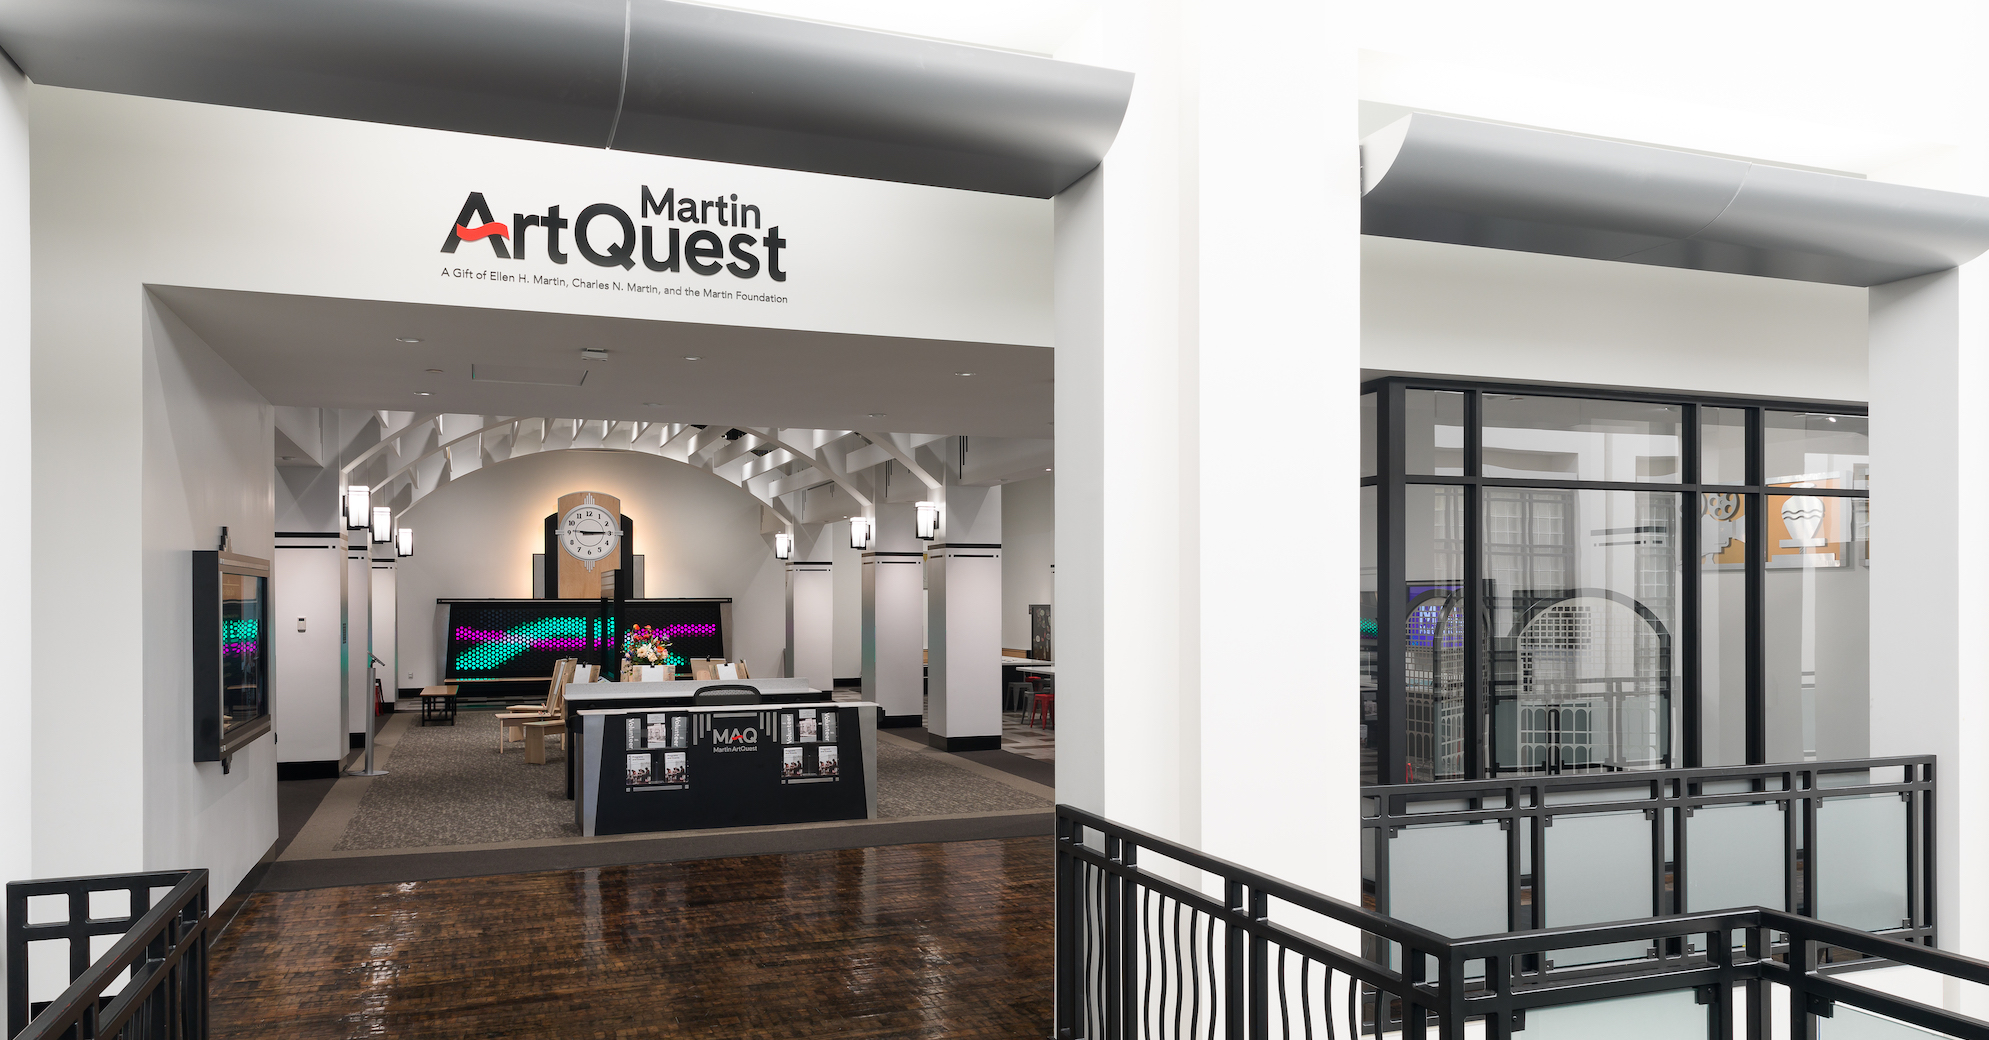 Martin ArtQuest Reopens at The Frist